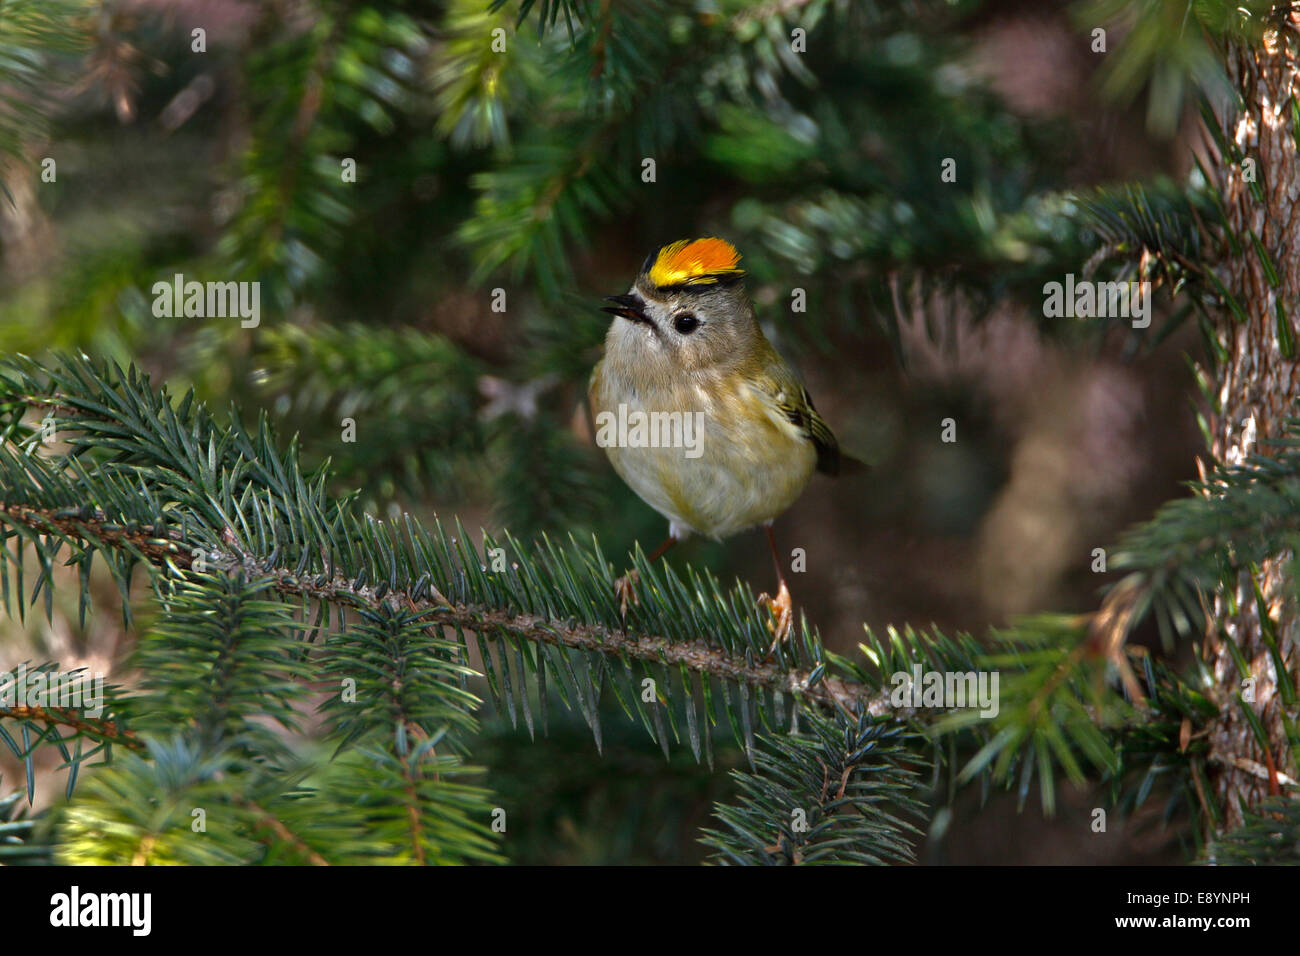 Goldcrest (Regulus regulus) flaring crest and singing in conifer forest North Wales UK May 54607 - Stock Image